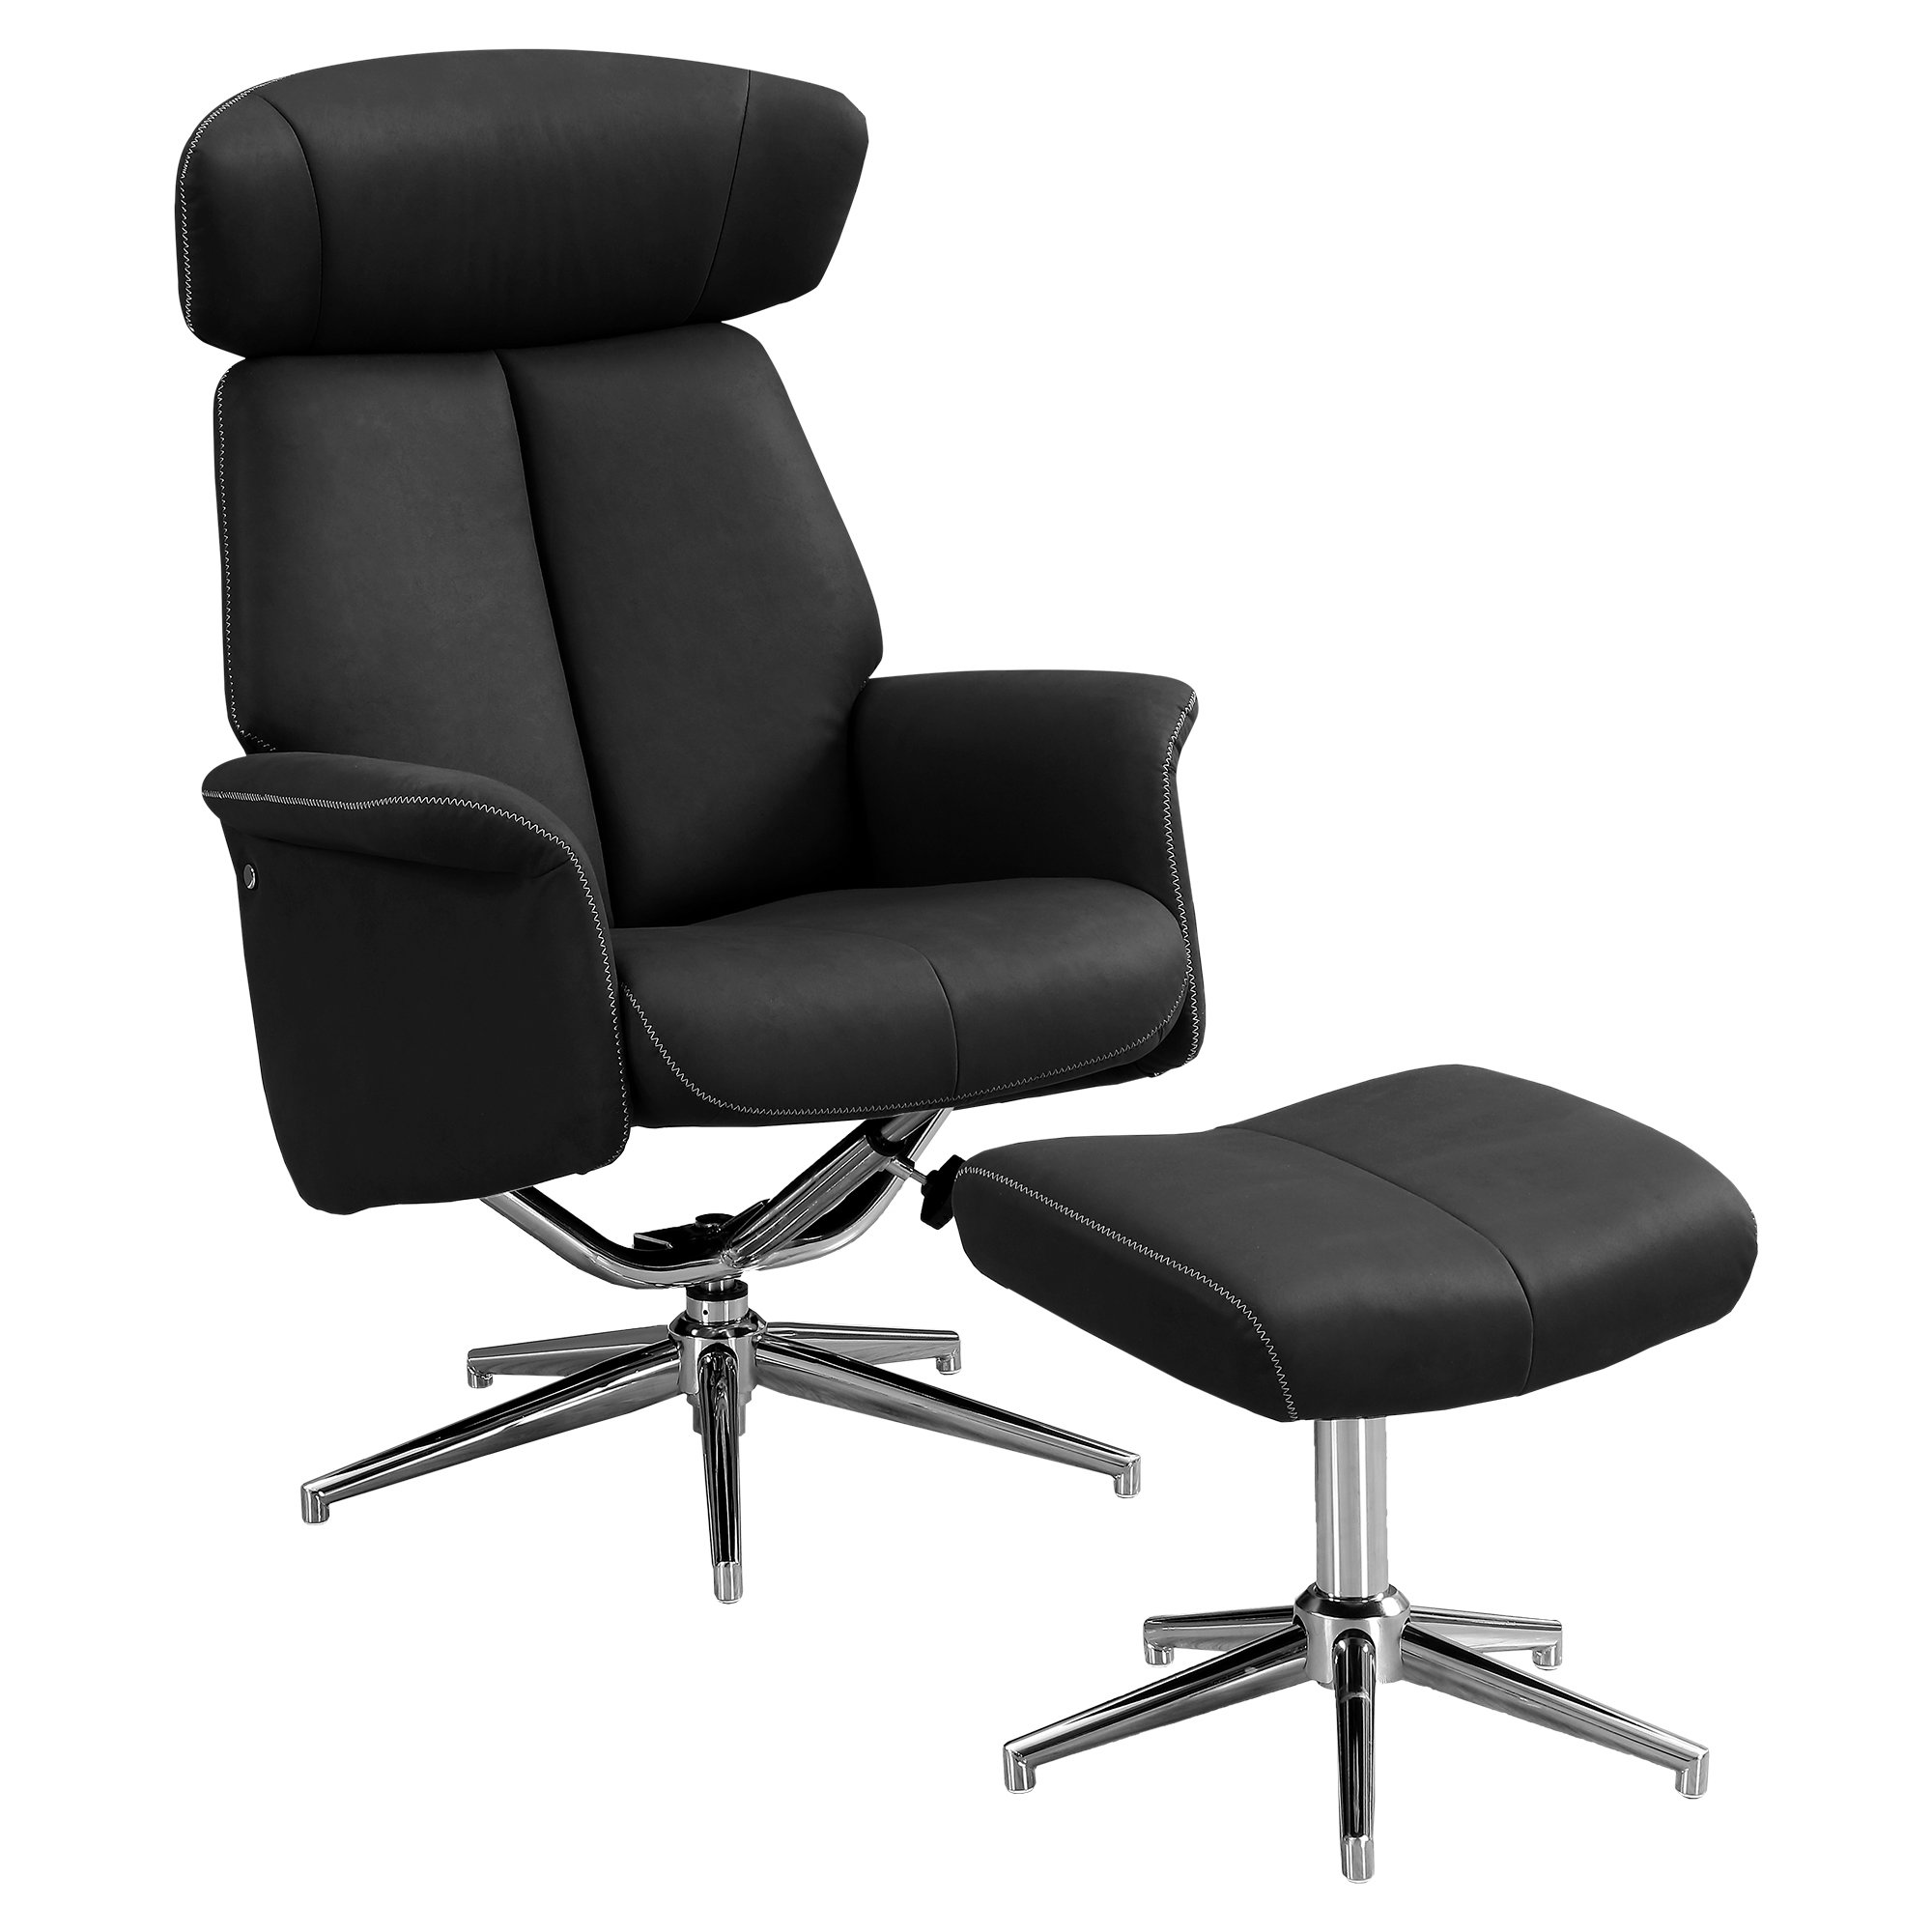 RECLINER - 2PCS SET / BLACK SWIVEL - ADJUSTABLE HEADREST